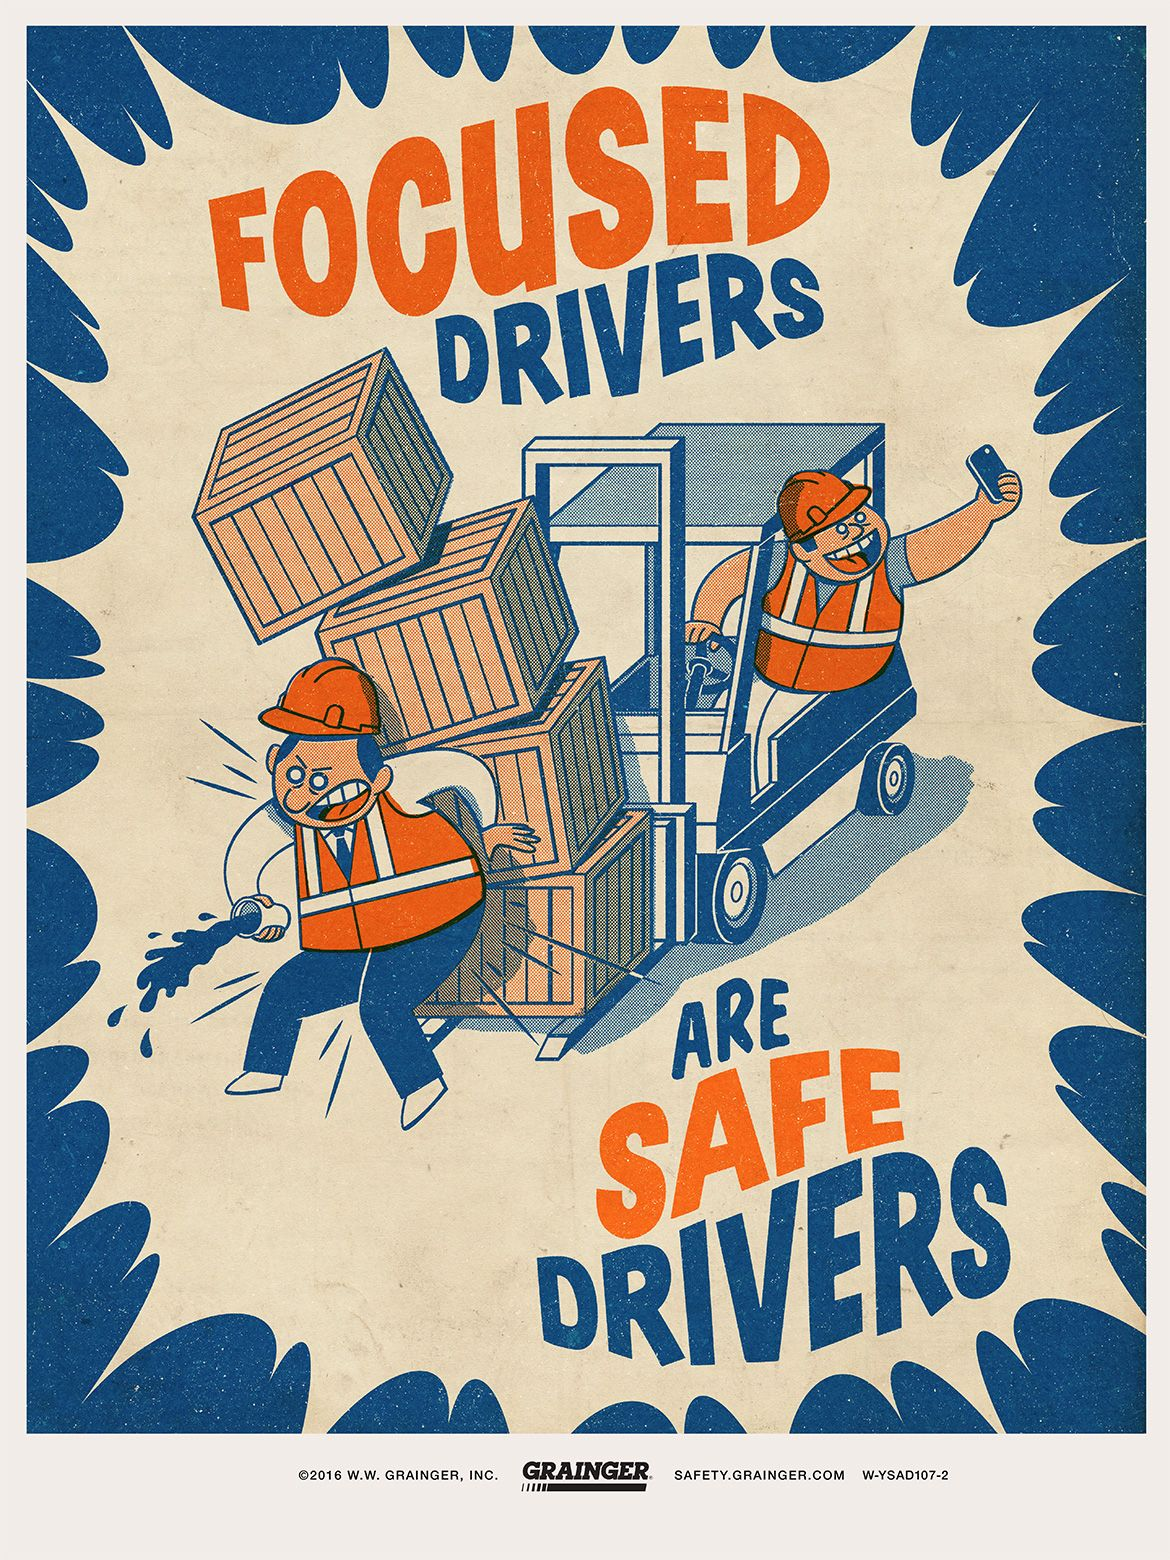 Focused Drivers Are Safe Drivers Safety posters, Safety